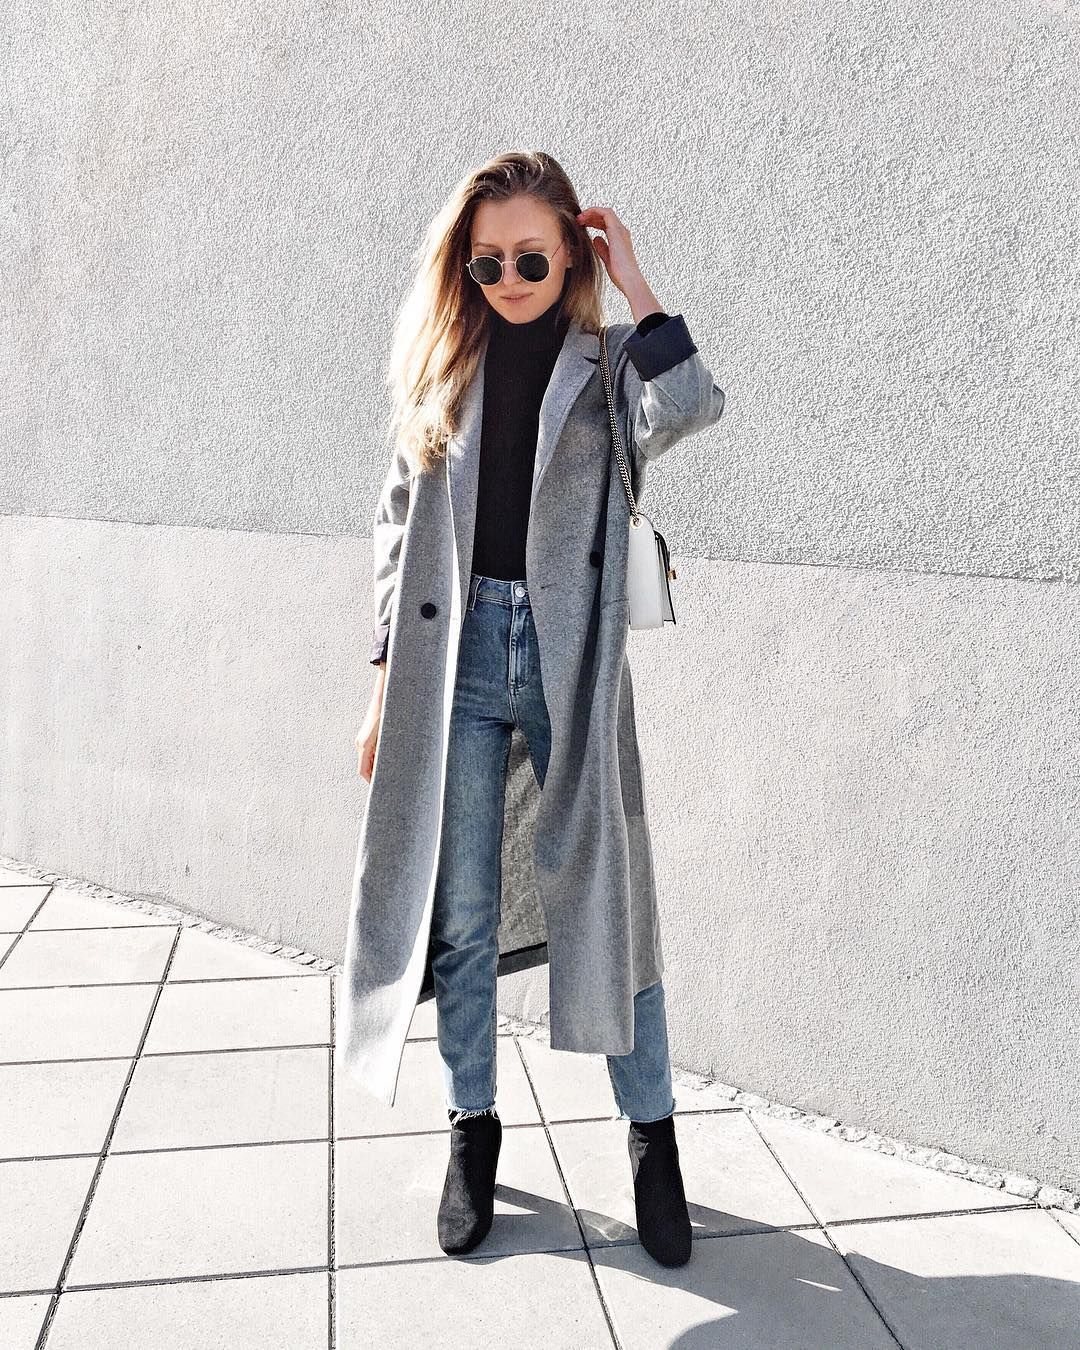 Americanvintage Ramitown Coat Livia Auer American Vintage Fashion Outfit Inspirations